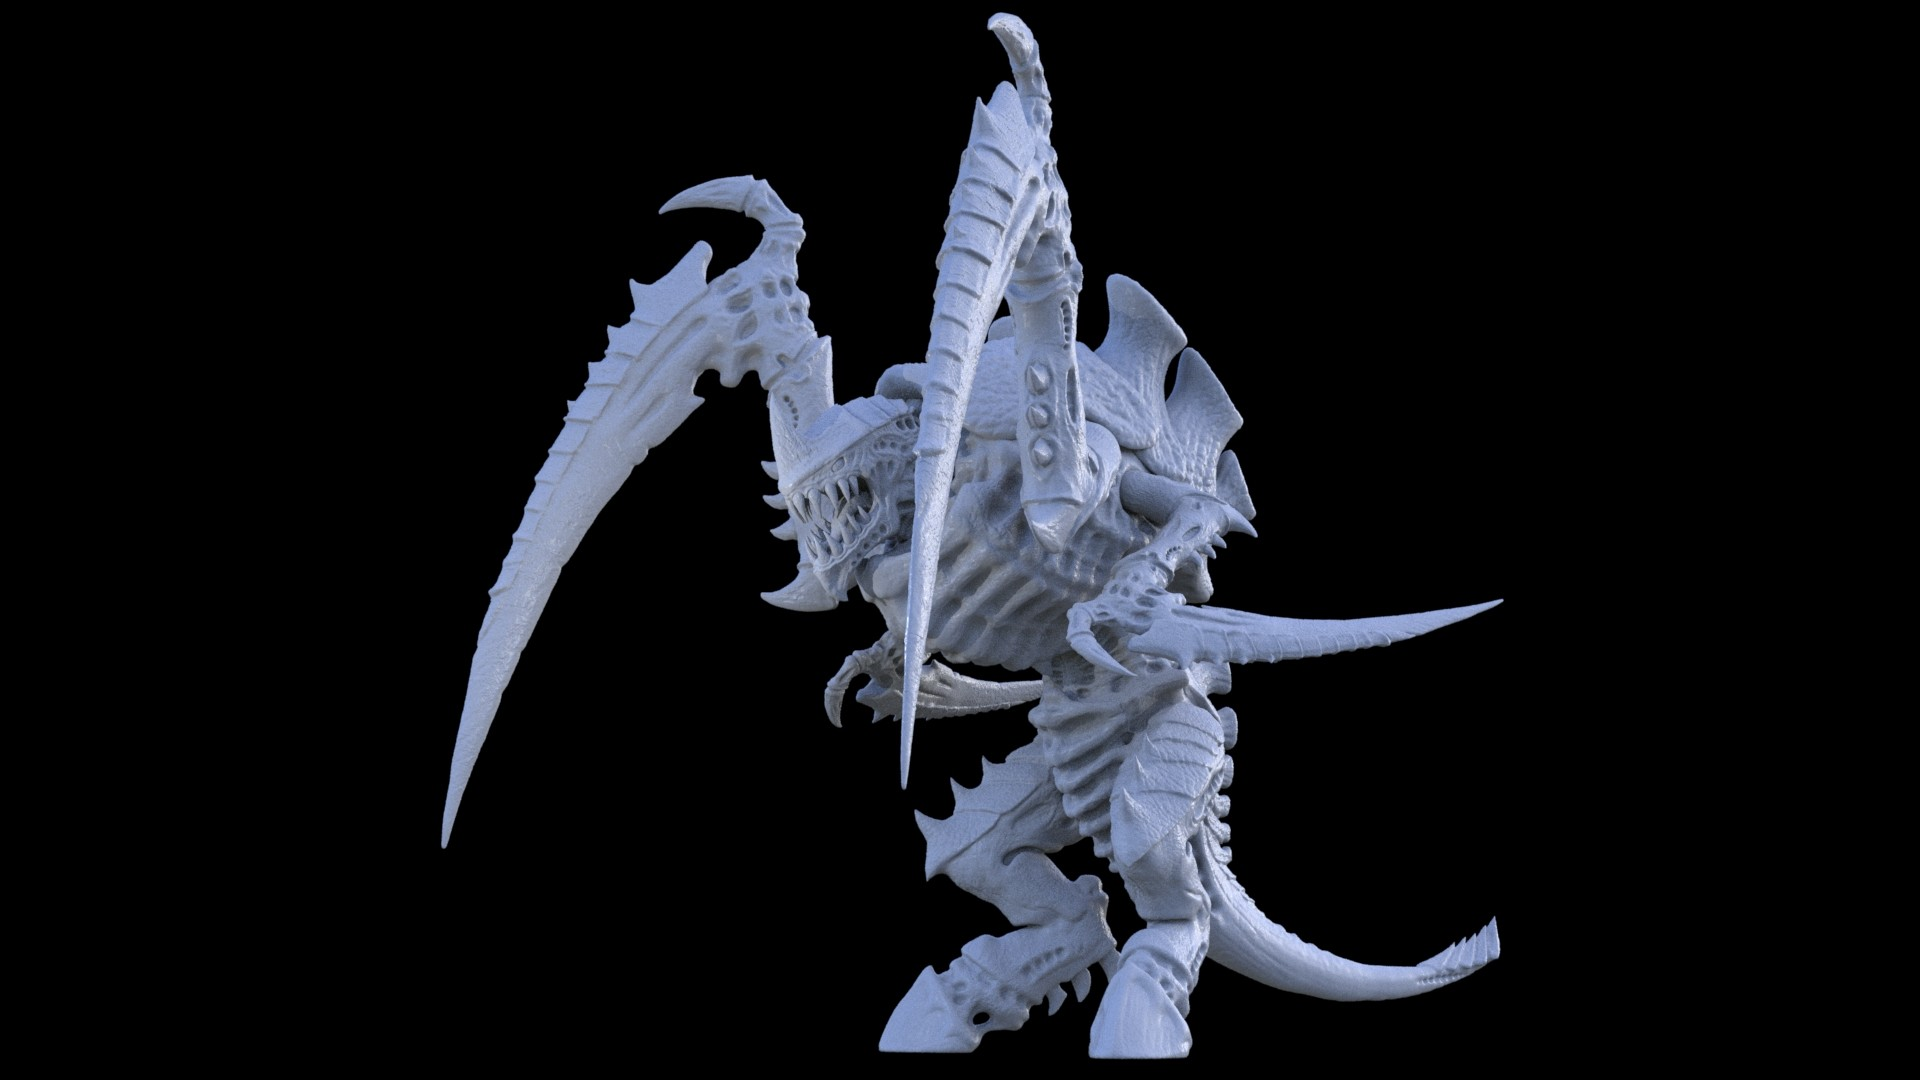 ArtStation - TYRANIDS THE INVASION (in process), ADIYAR AIDARBEKOV